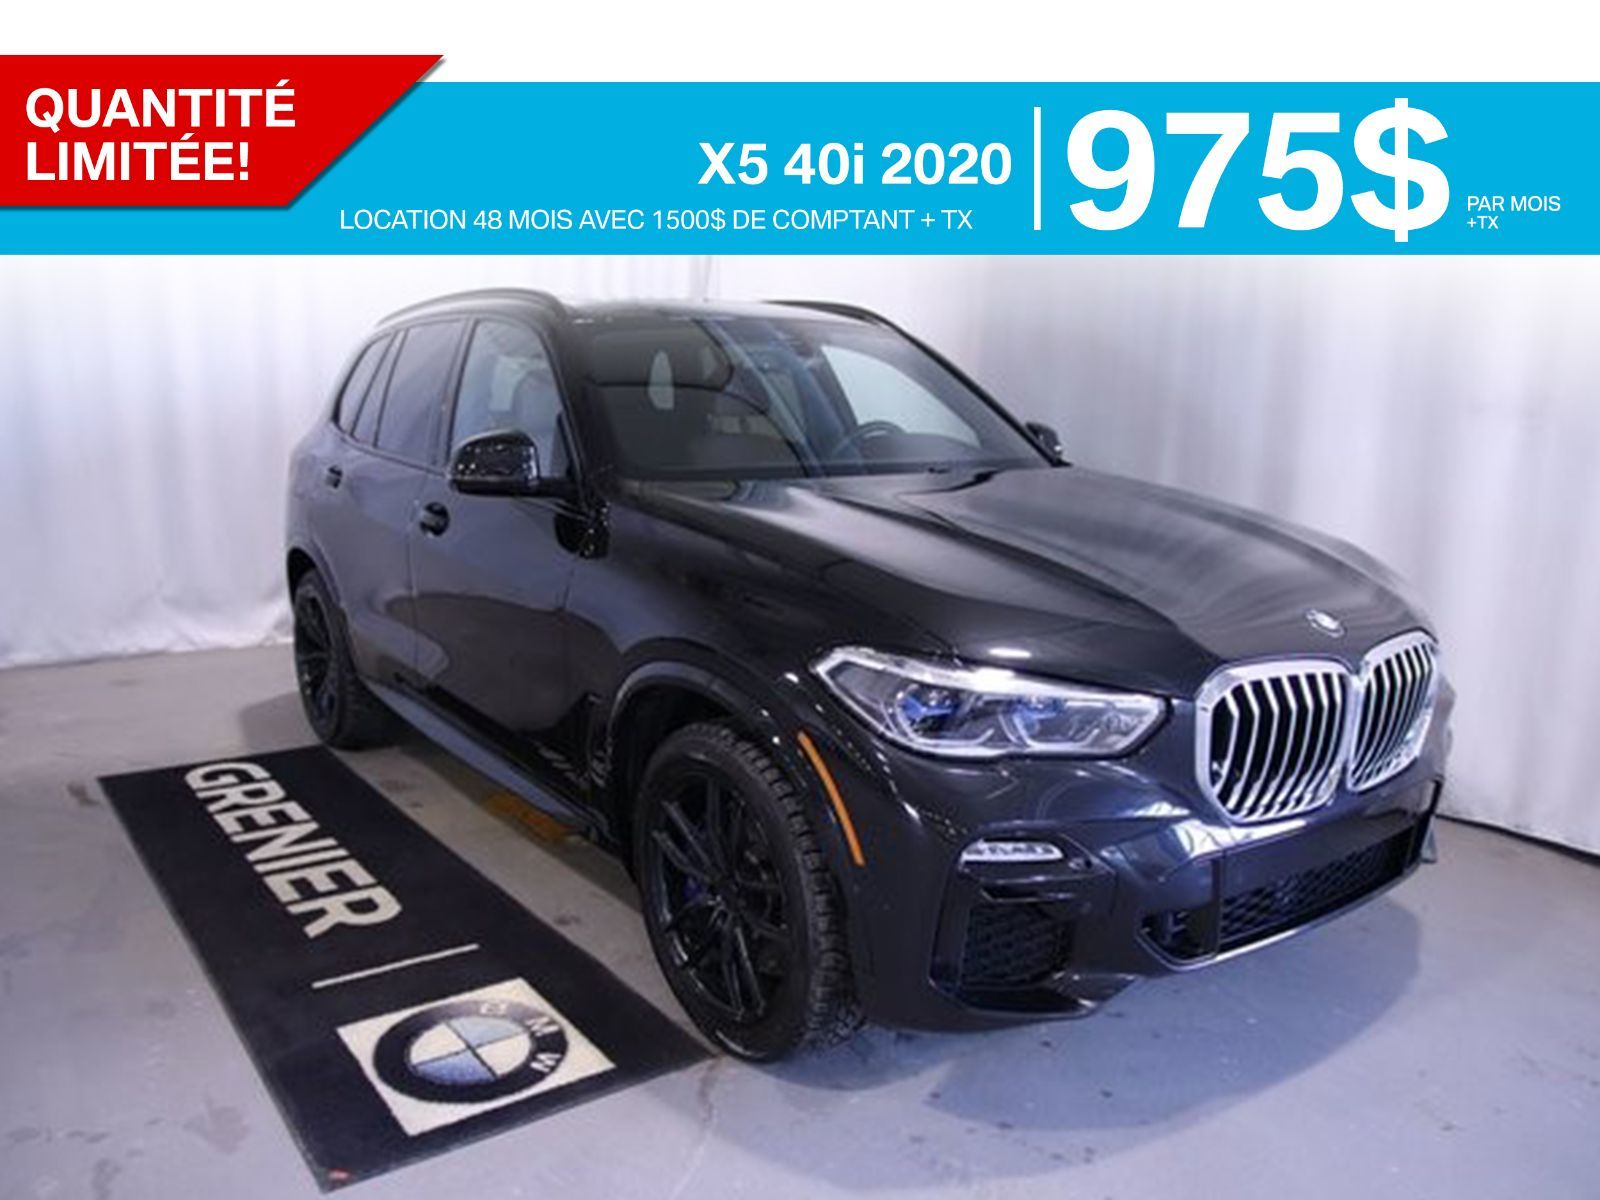 2020 Bmw X5 Xdrive40i Used For Sale In Toit Pano Mags 22